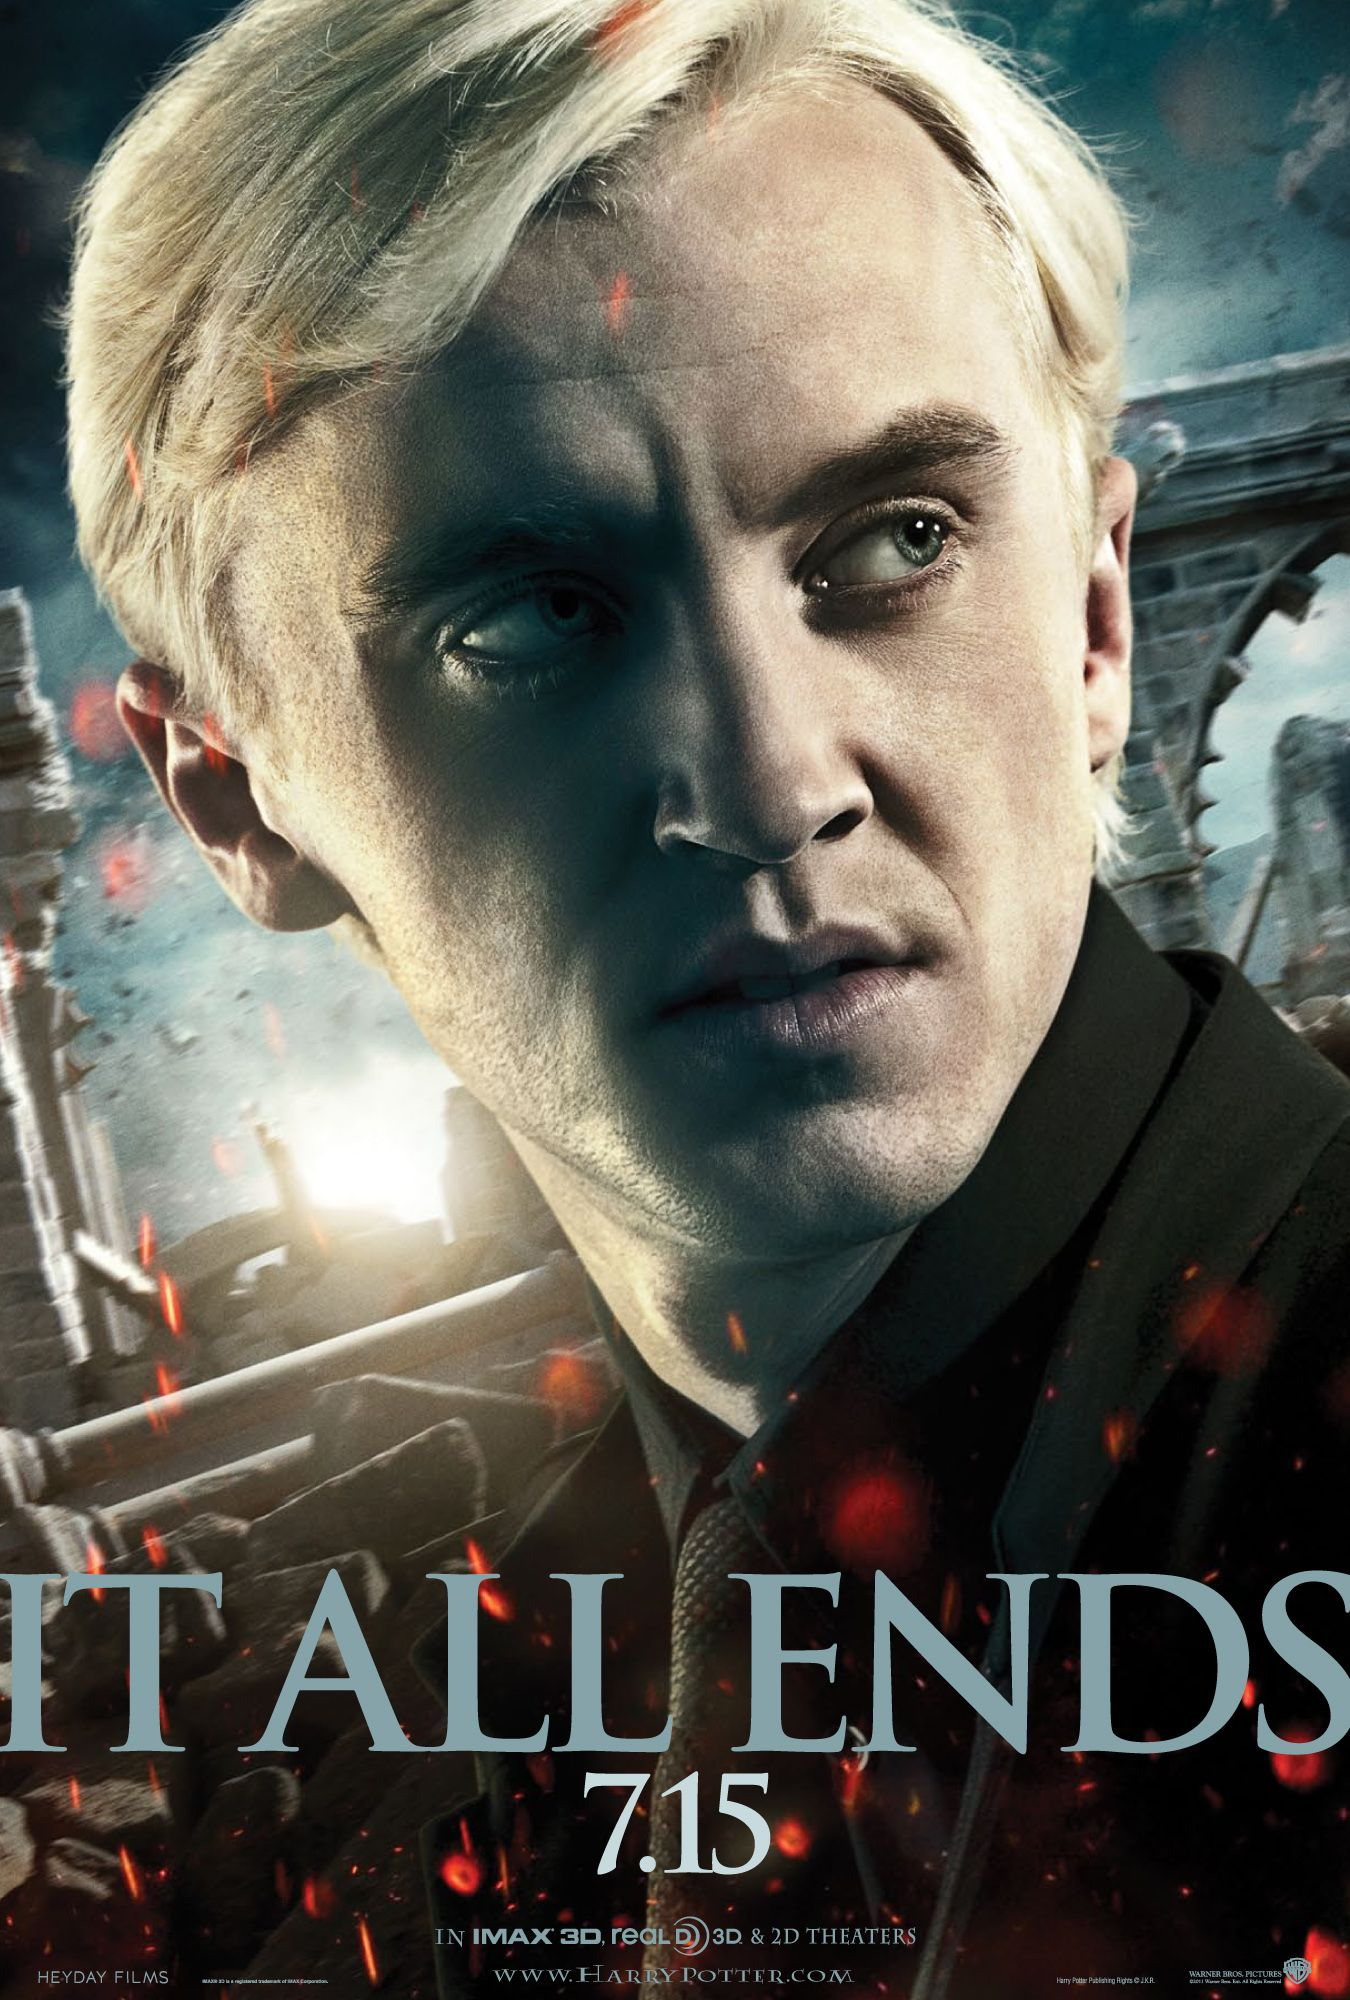 draco harry potter and the deathly hallows part 2 poster collider